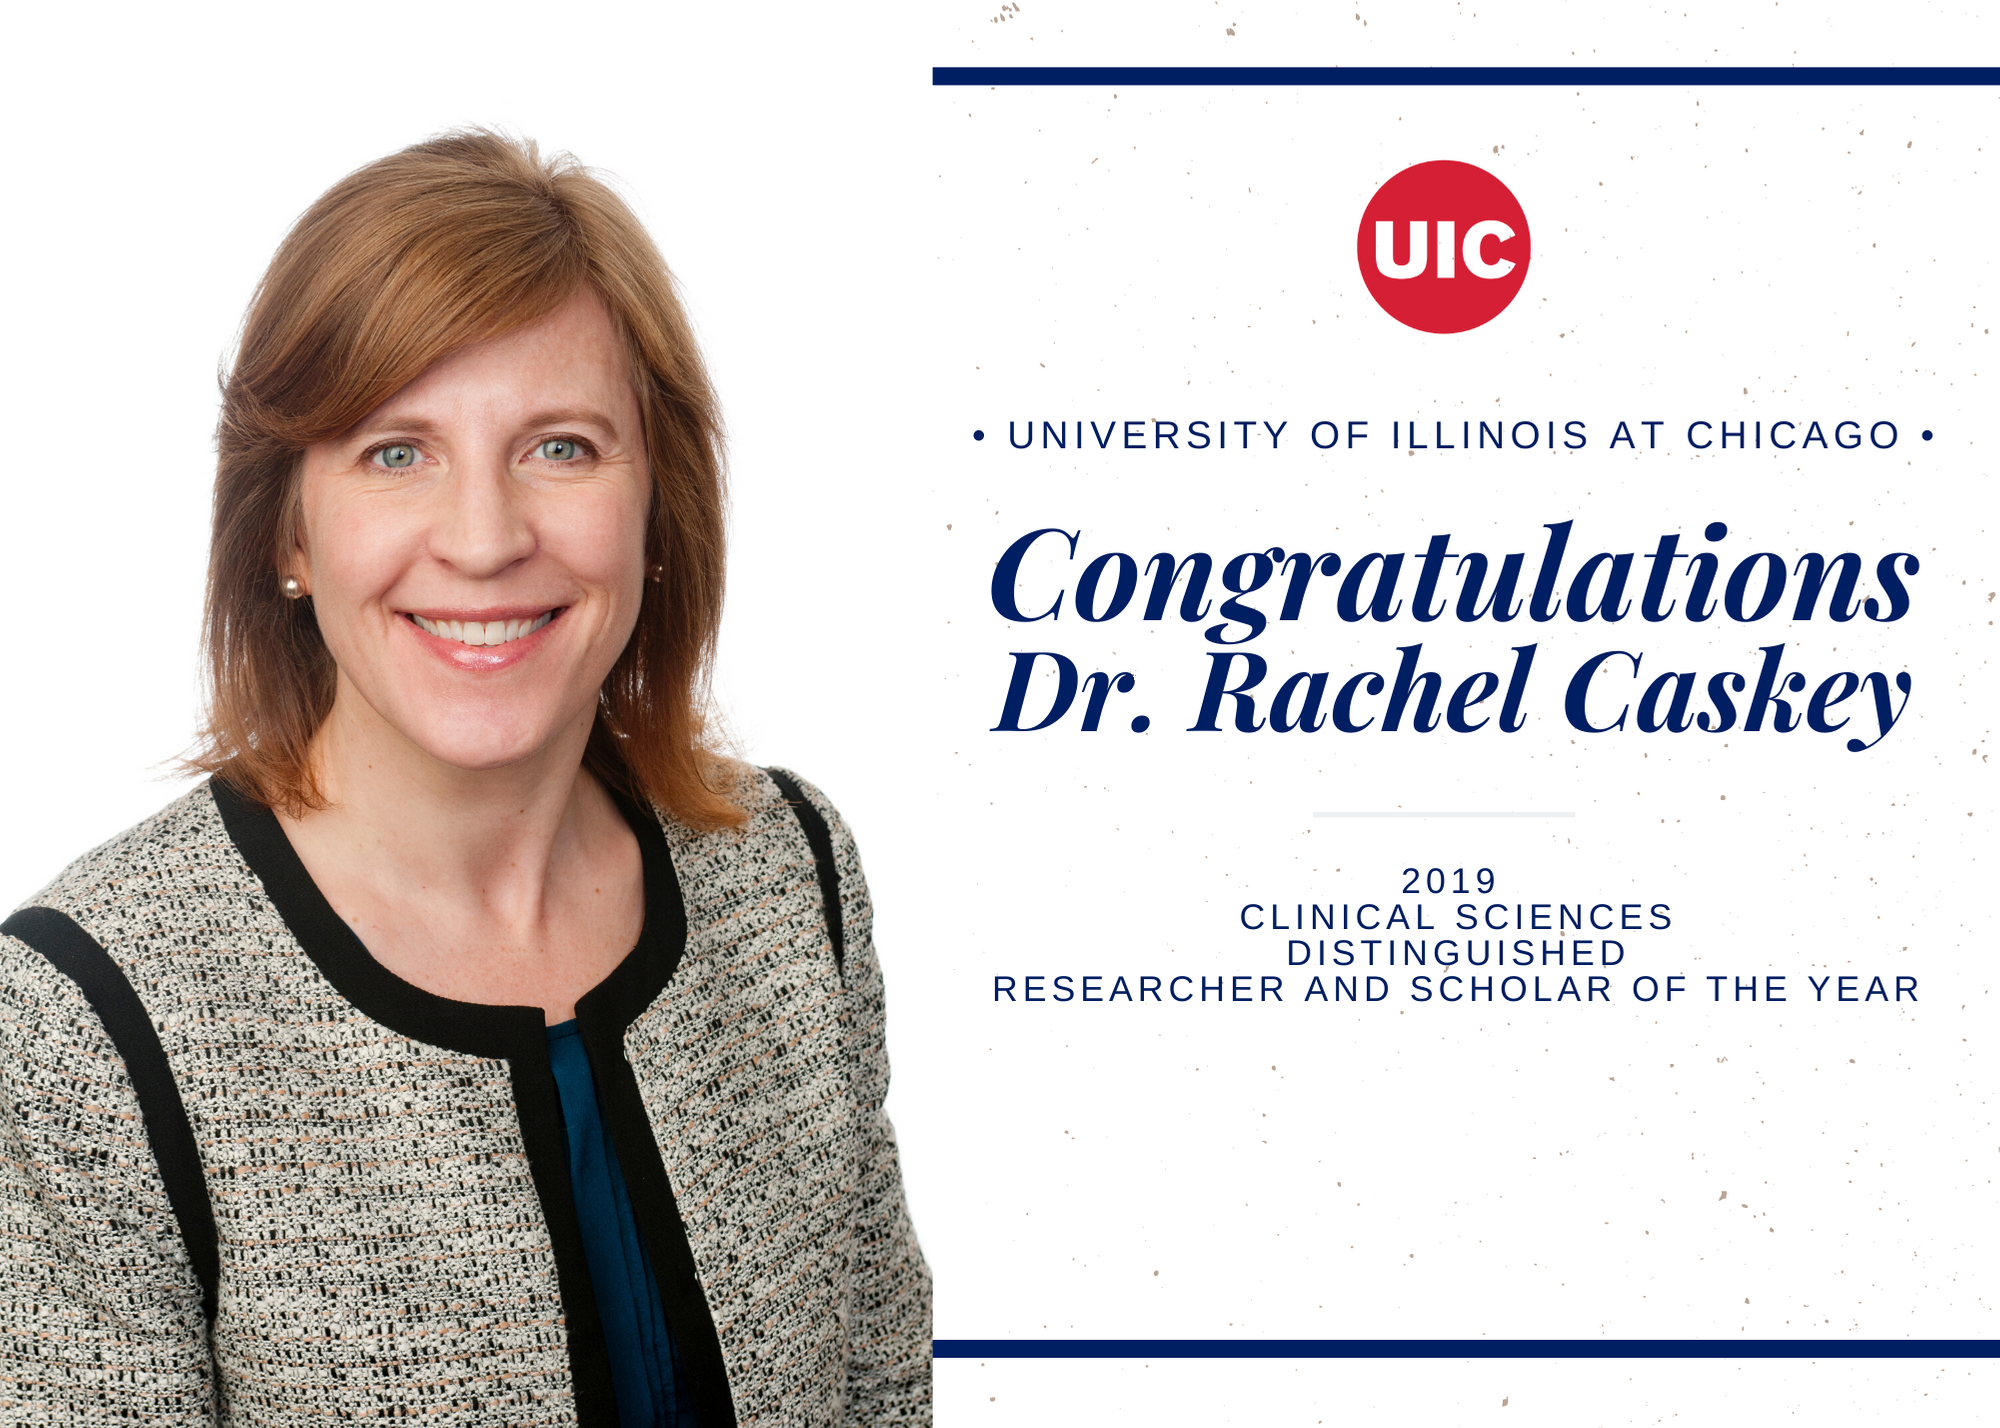 Dr. Rachel Caskey recipient of the 2019 UIC Distinguished Researcher and Scholar of the Year Award